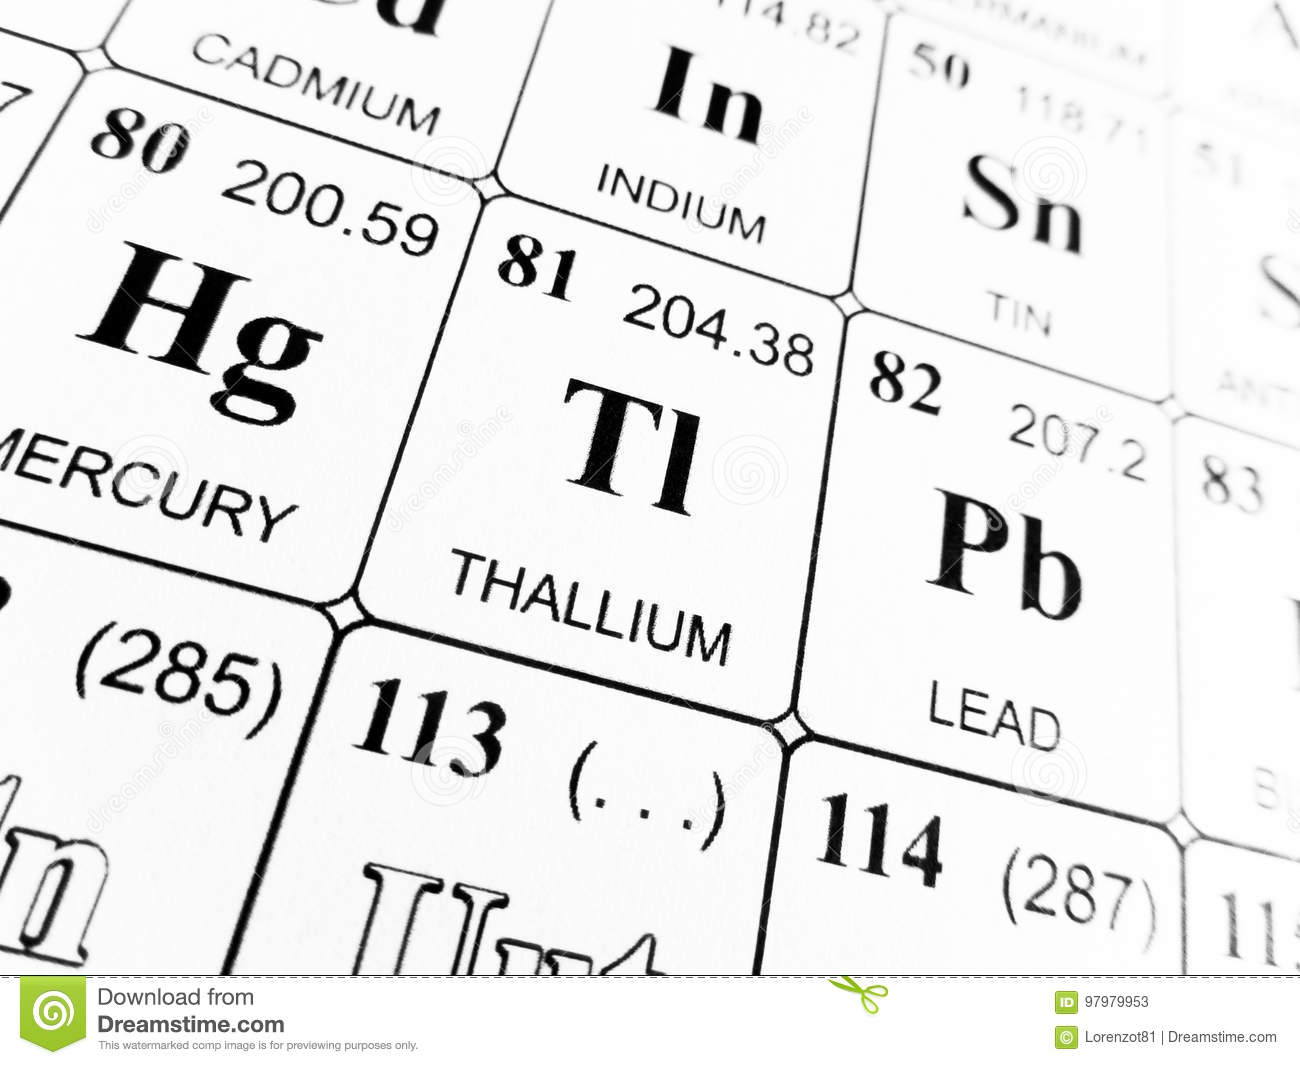 Thallium On The Periodic Table Of The Elements Stock Image Image